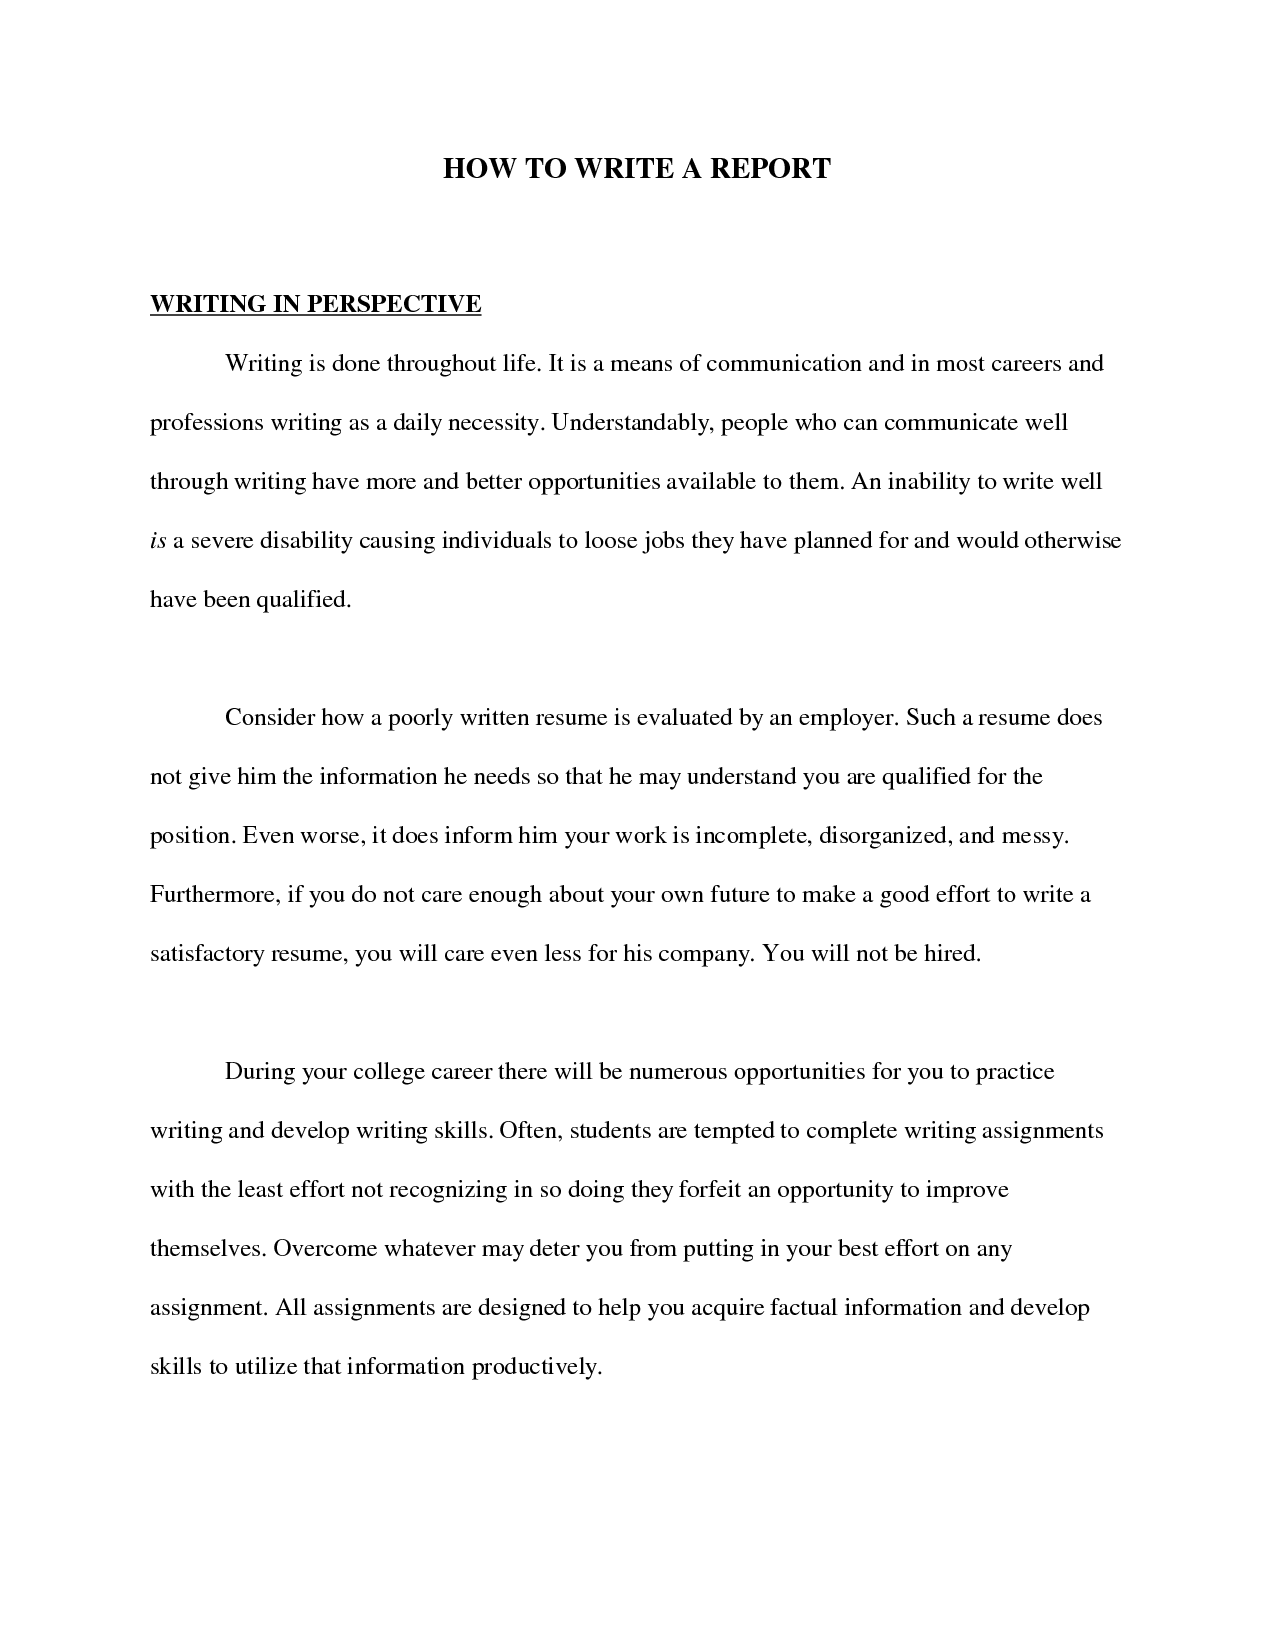 Academic Report Writing For Me Professional Writing Website